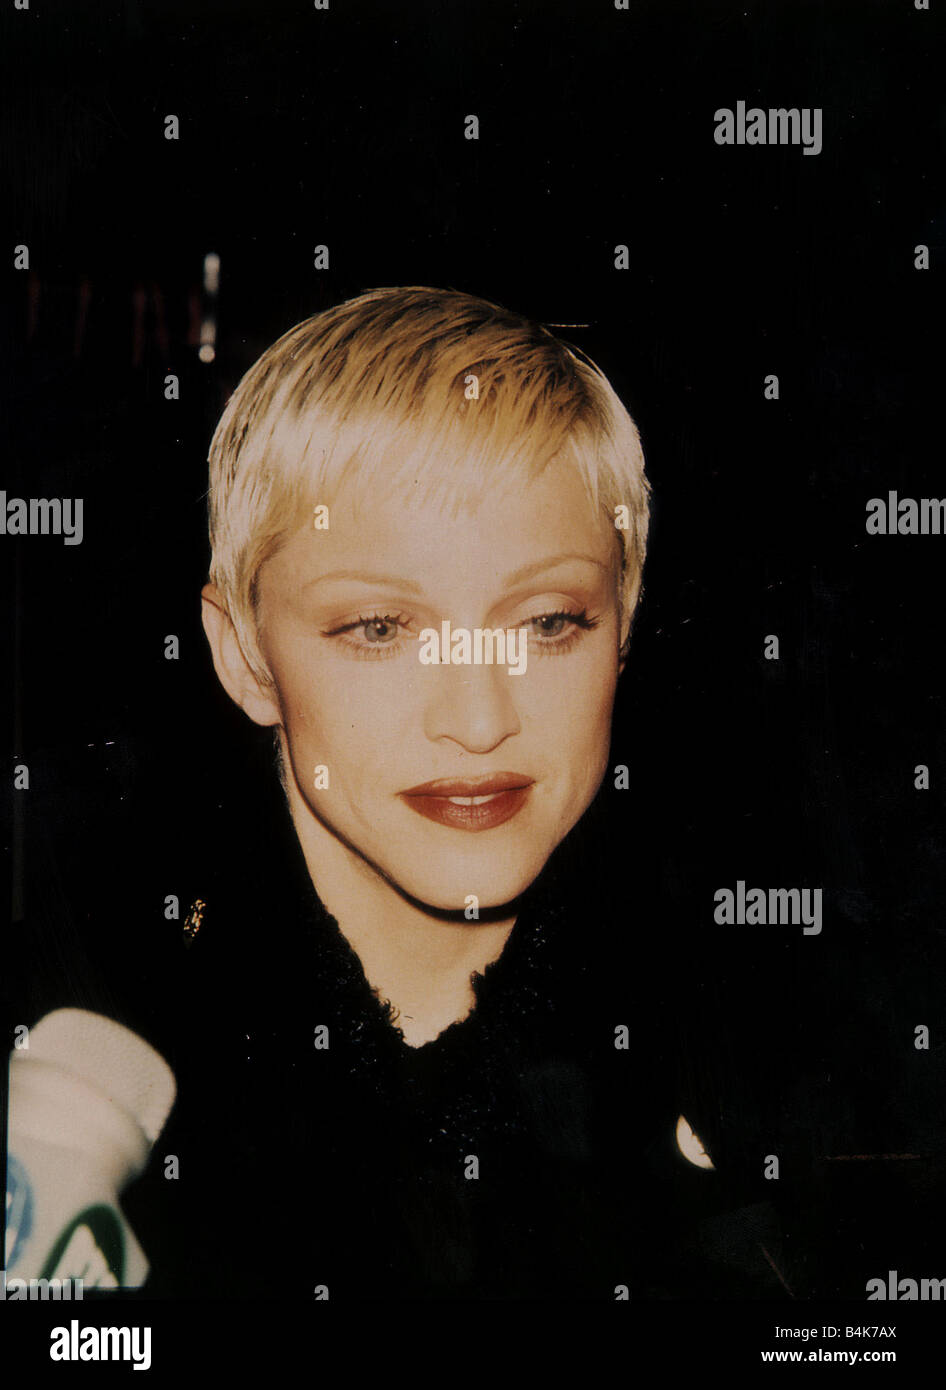 Madonna Singer Actress With Short Blond Hair Dbase Stock Photo